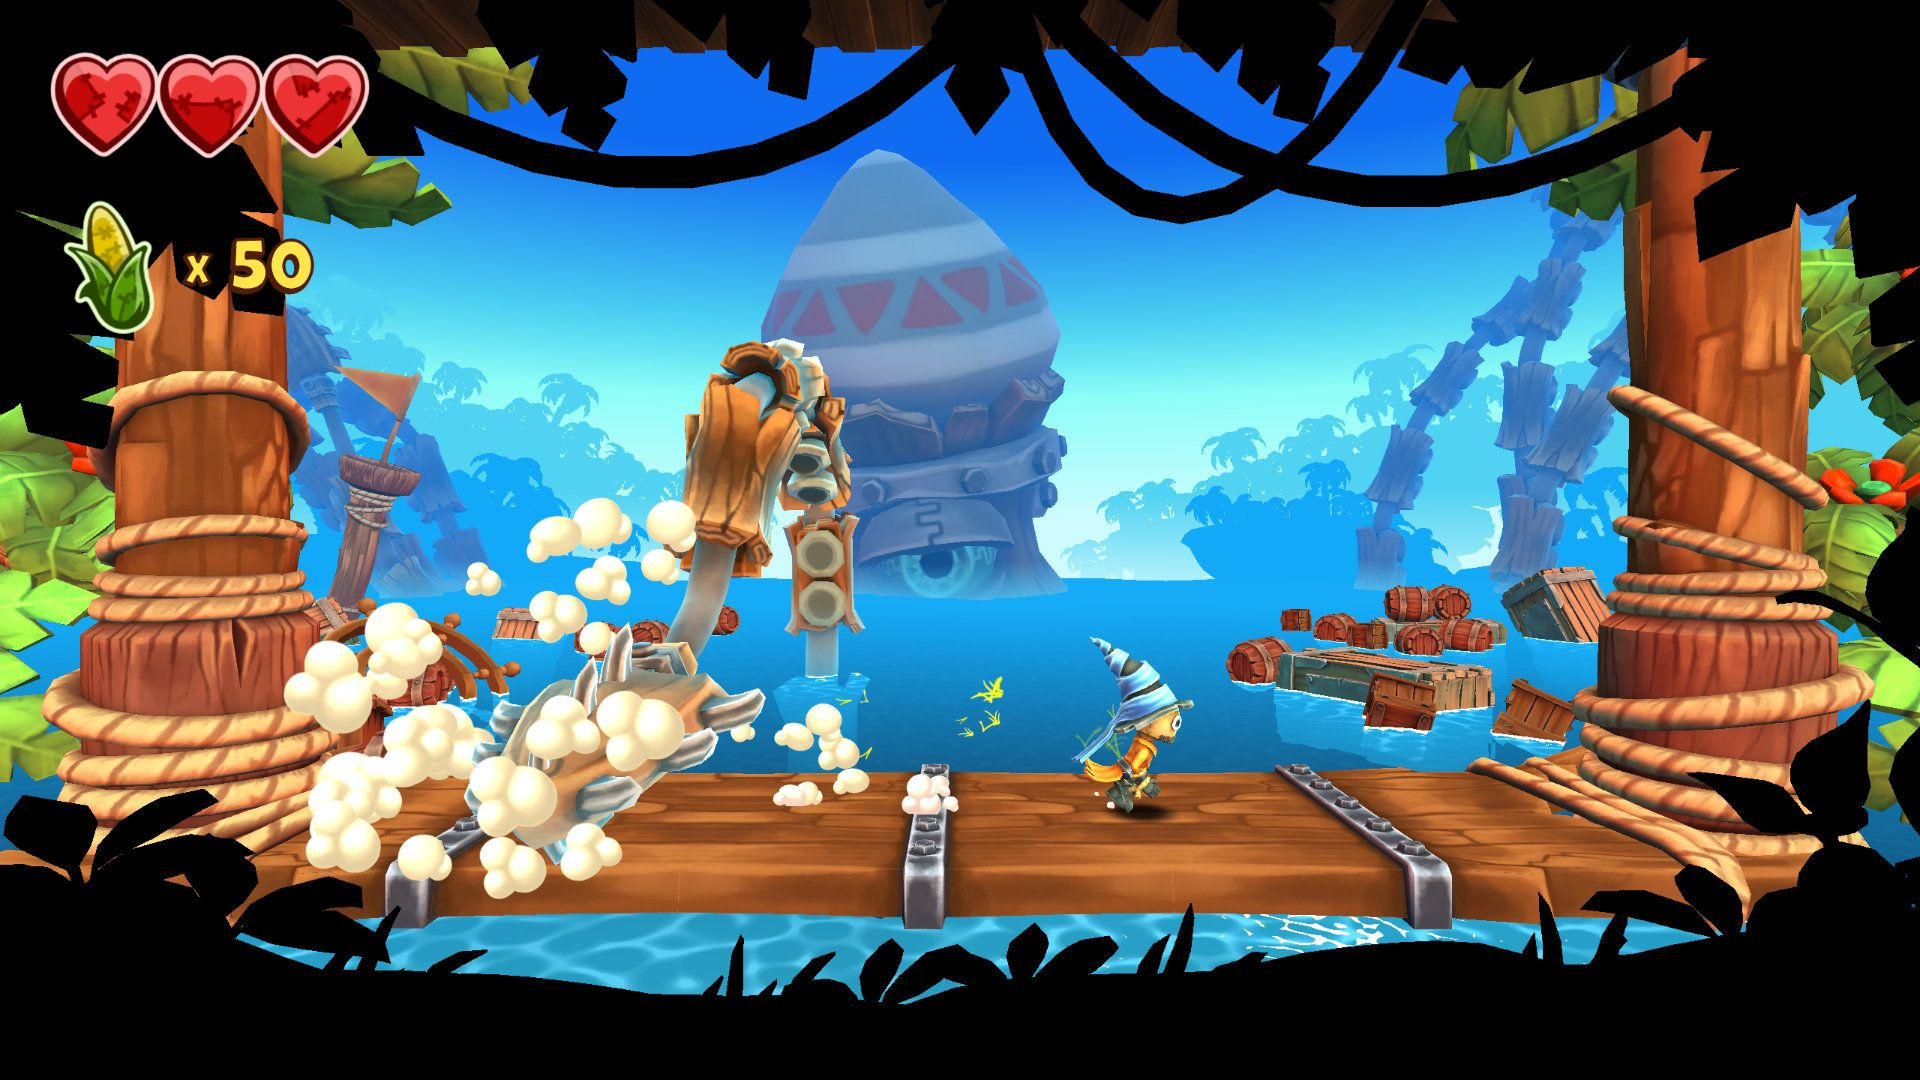 Stitchy In Tooki Trouble - Feature Image